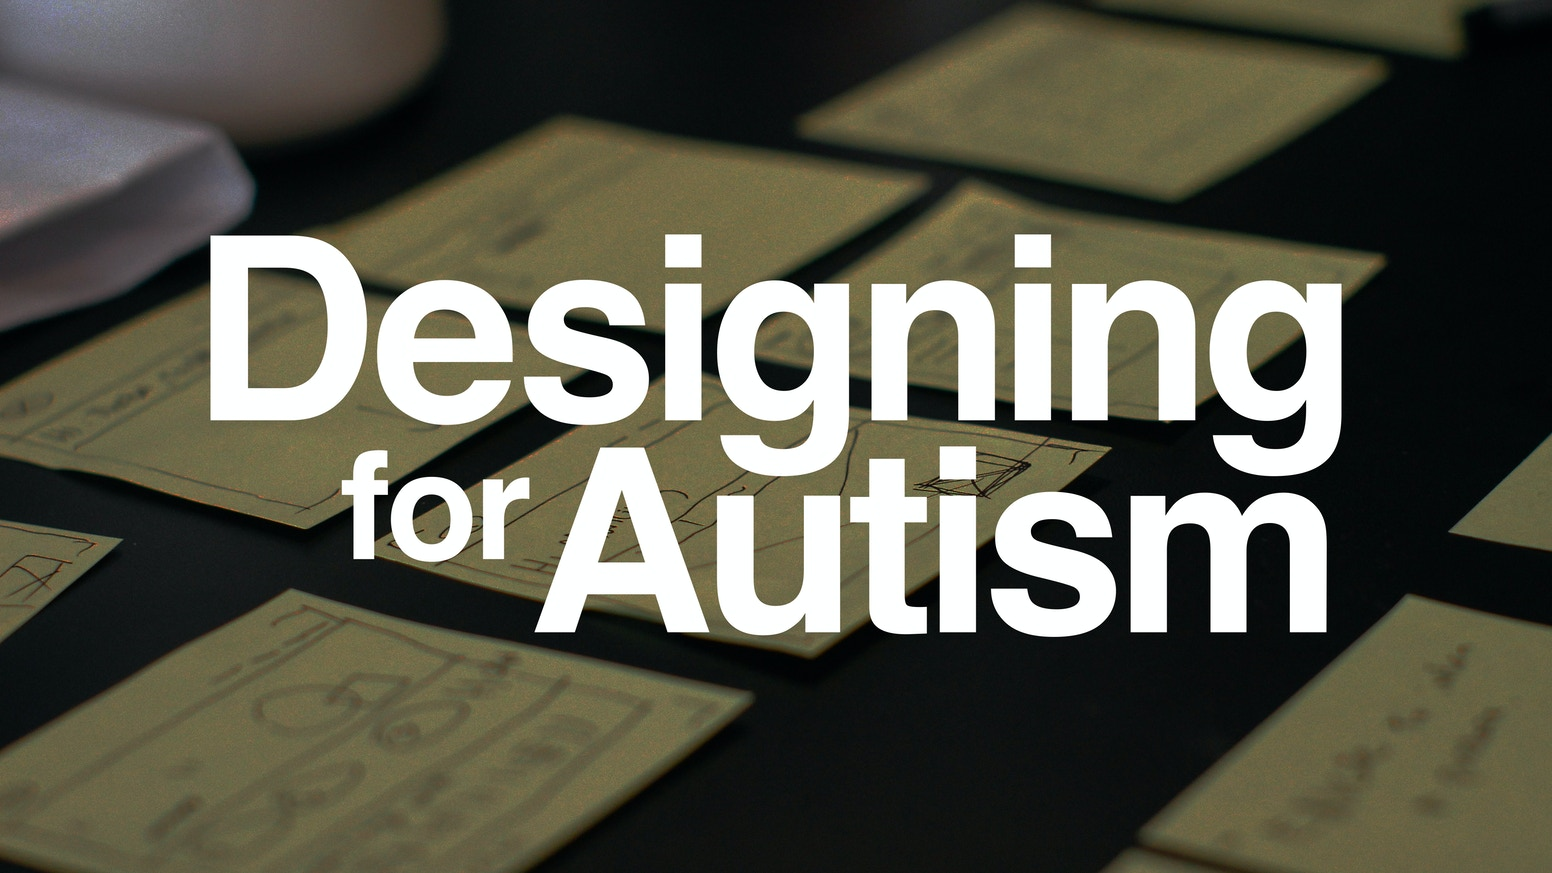 A cross-country meetup series to bring people who are designing for autism together to share their knowledge and build a community.